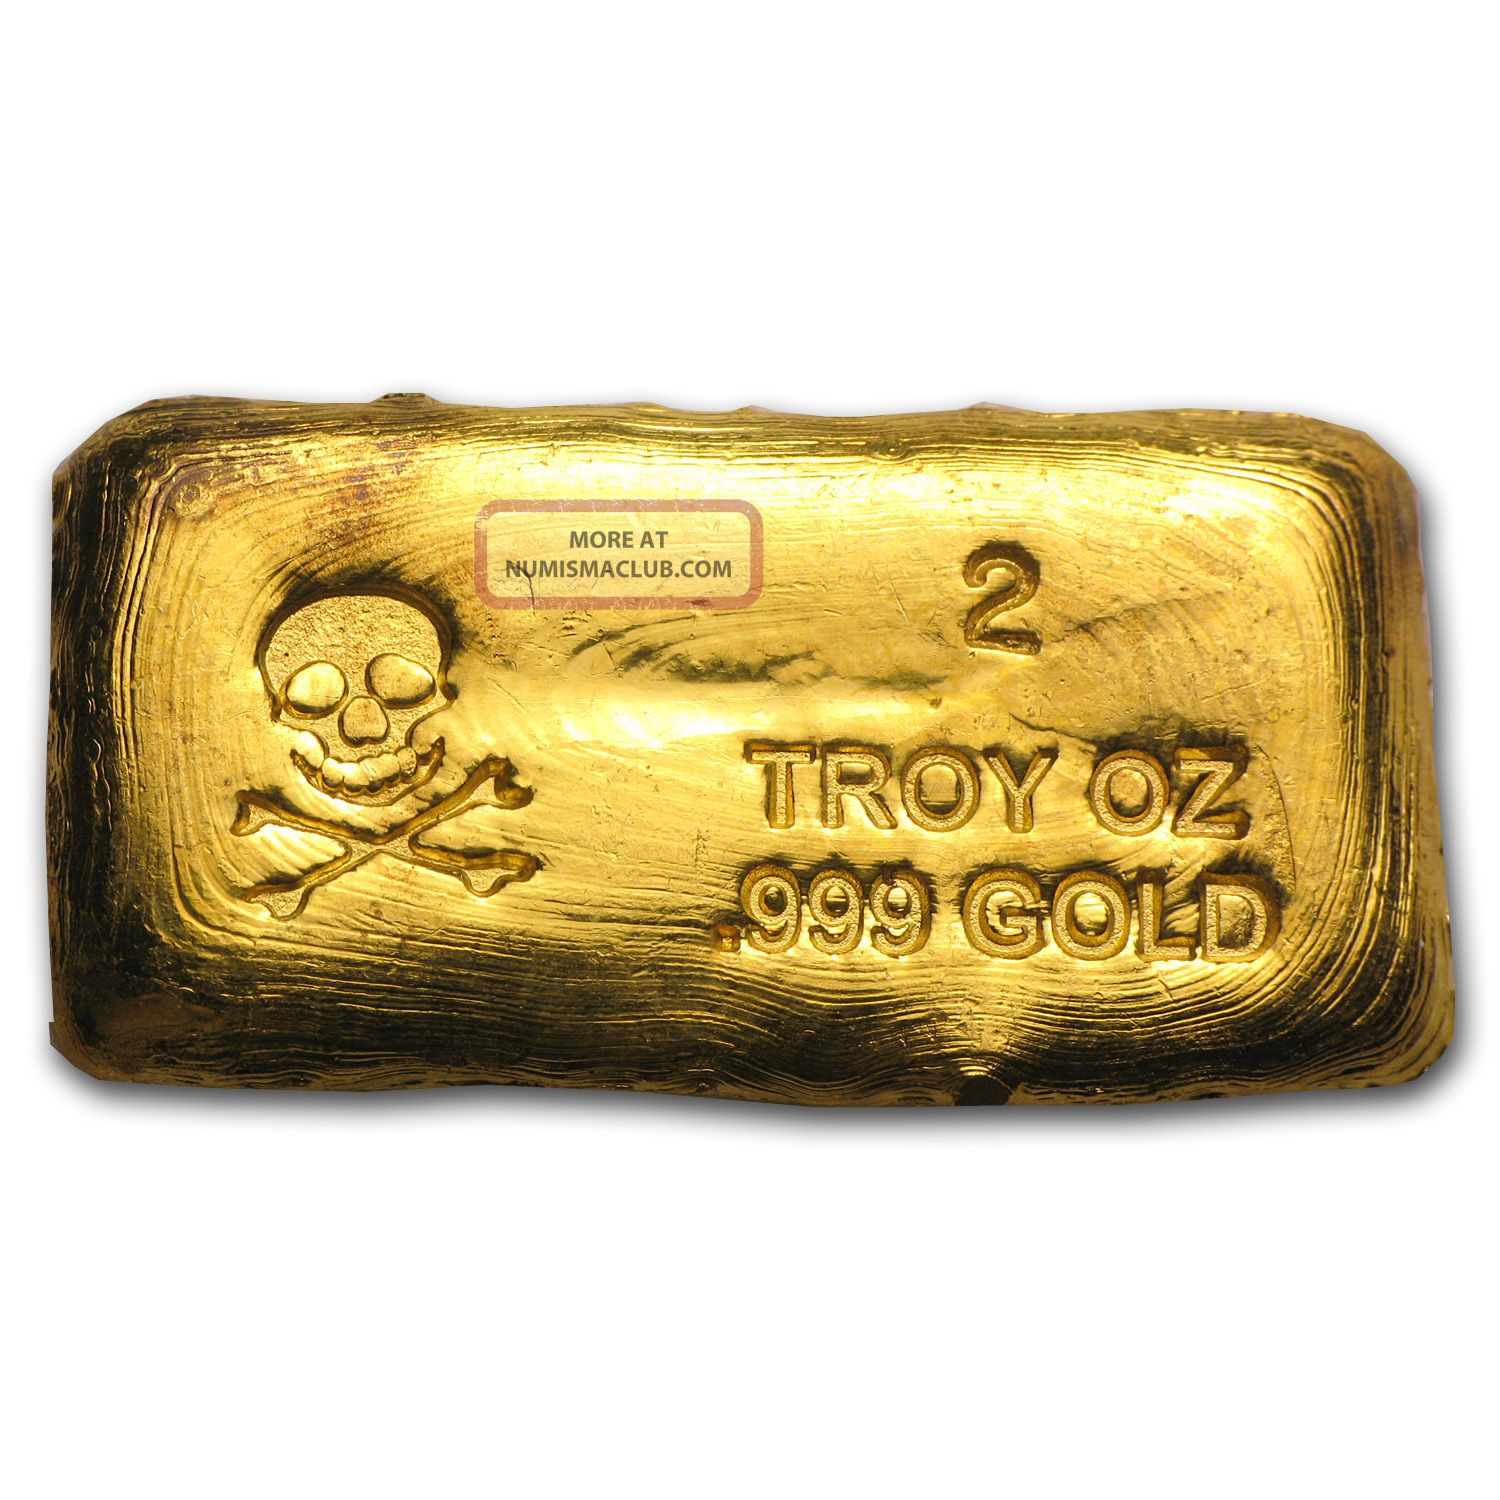 2 oz skull amp bones gold bar hand poured gold bar sku 79416